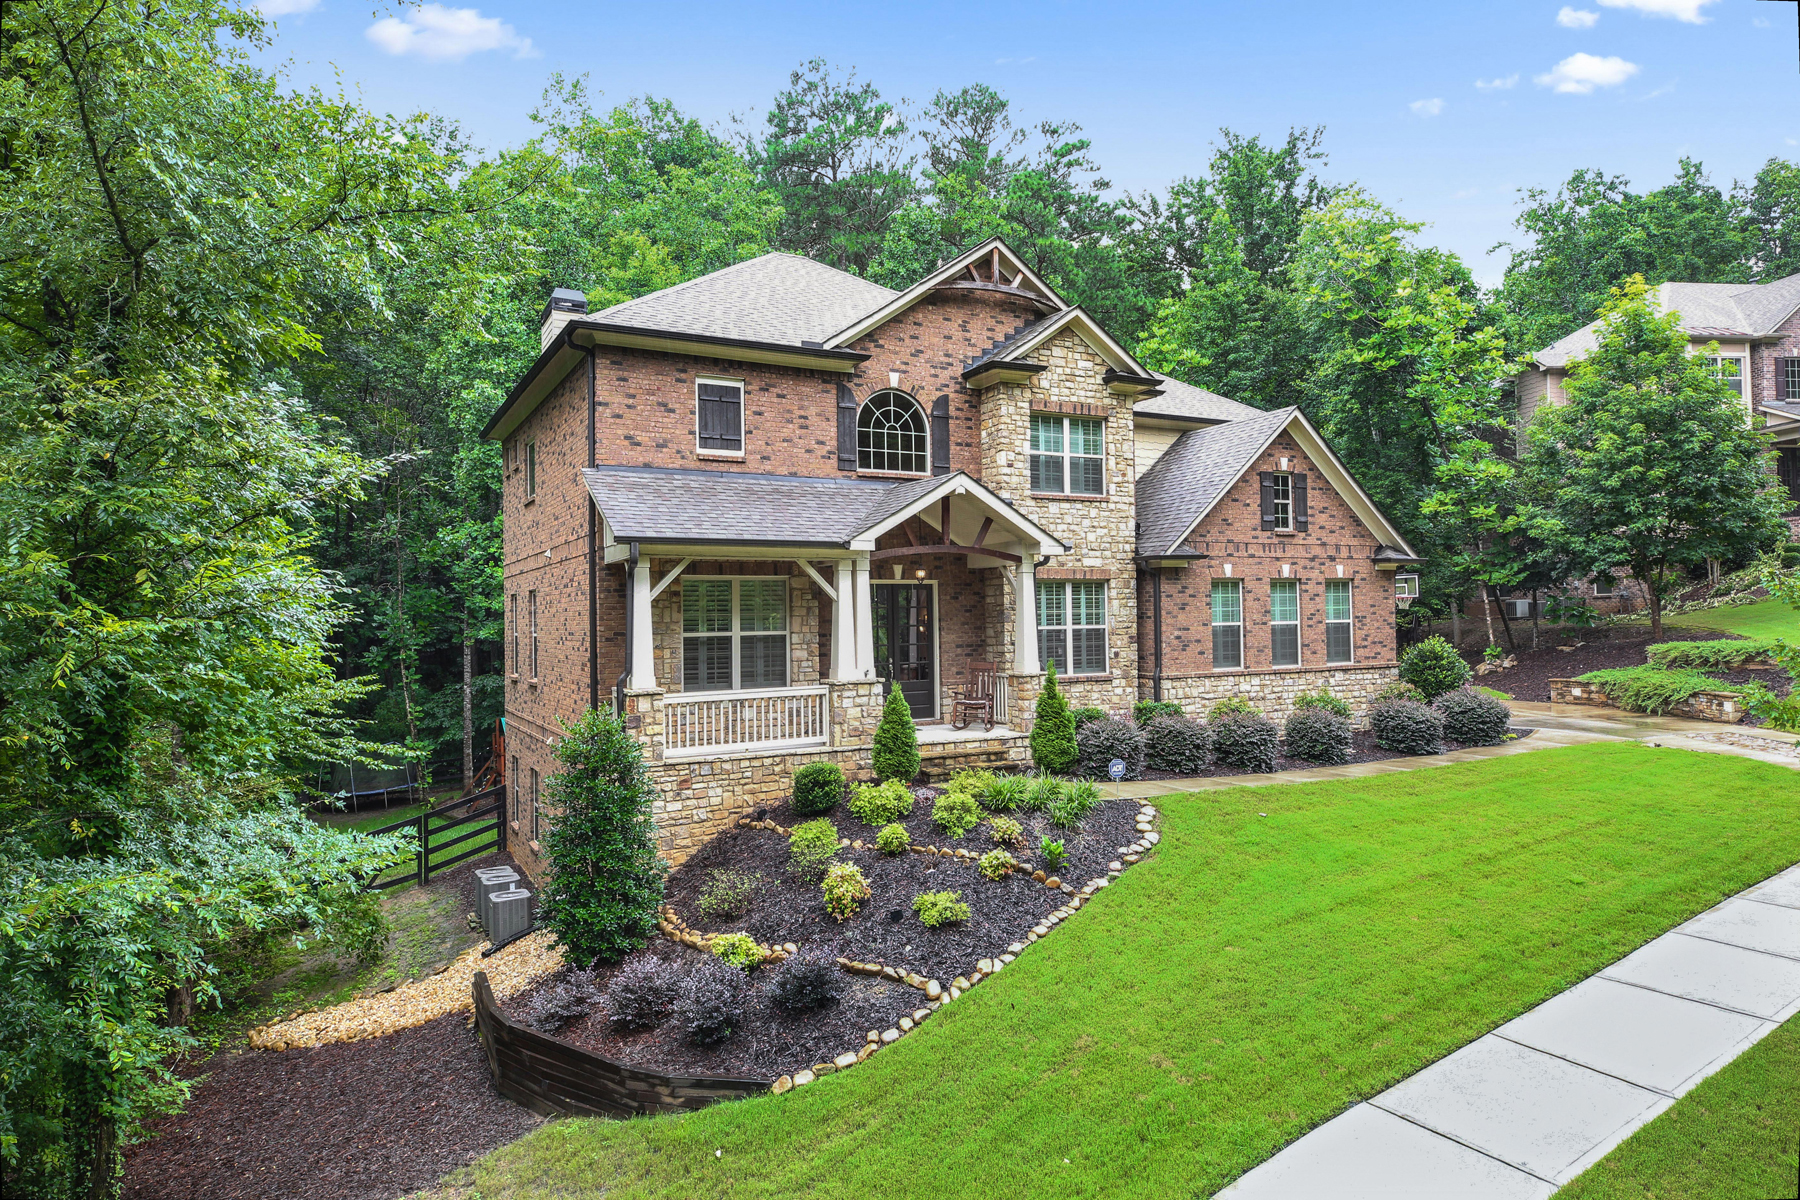 Single Family Home for Sale at Sophisticated Roswell Beauty In Private Community 1010 Taimen Drive Roswell, Georgia 30075 United States